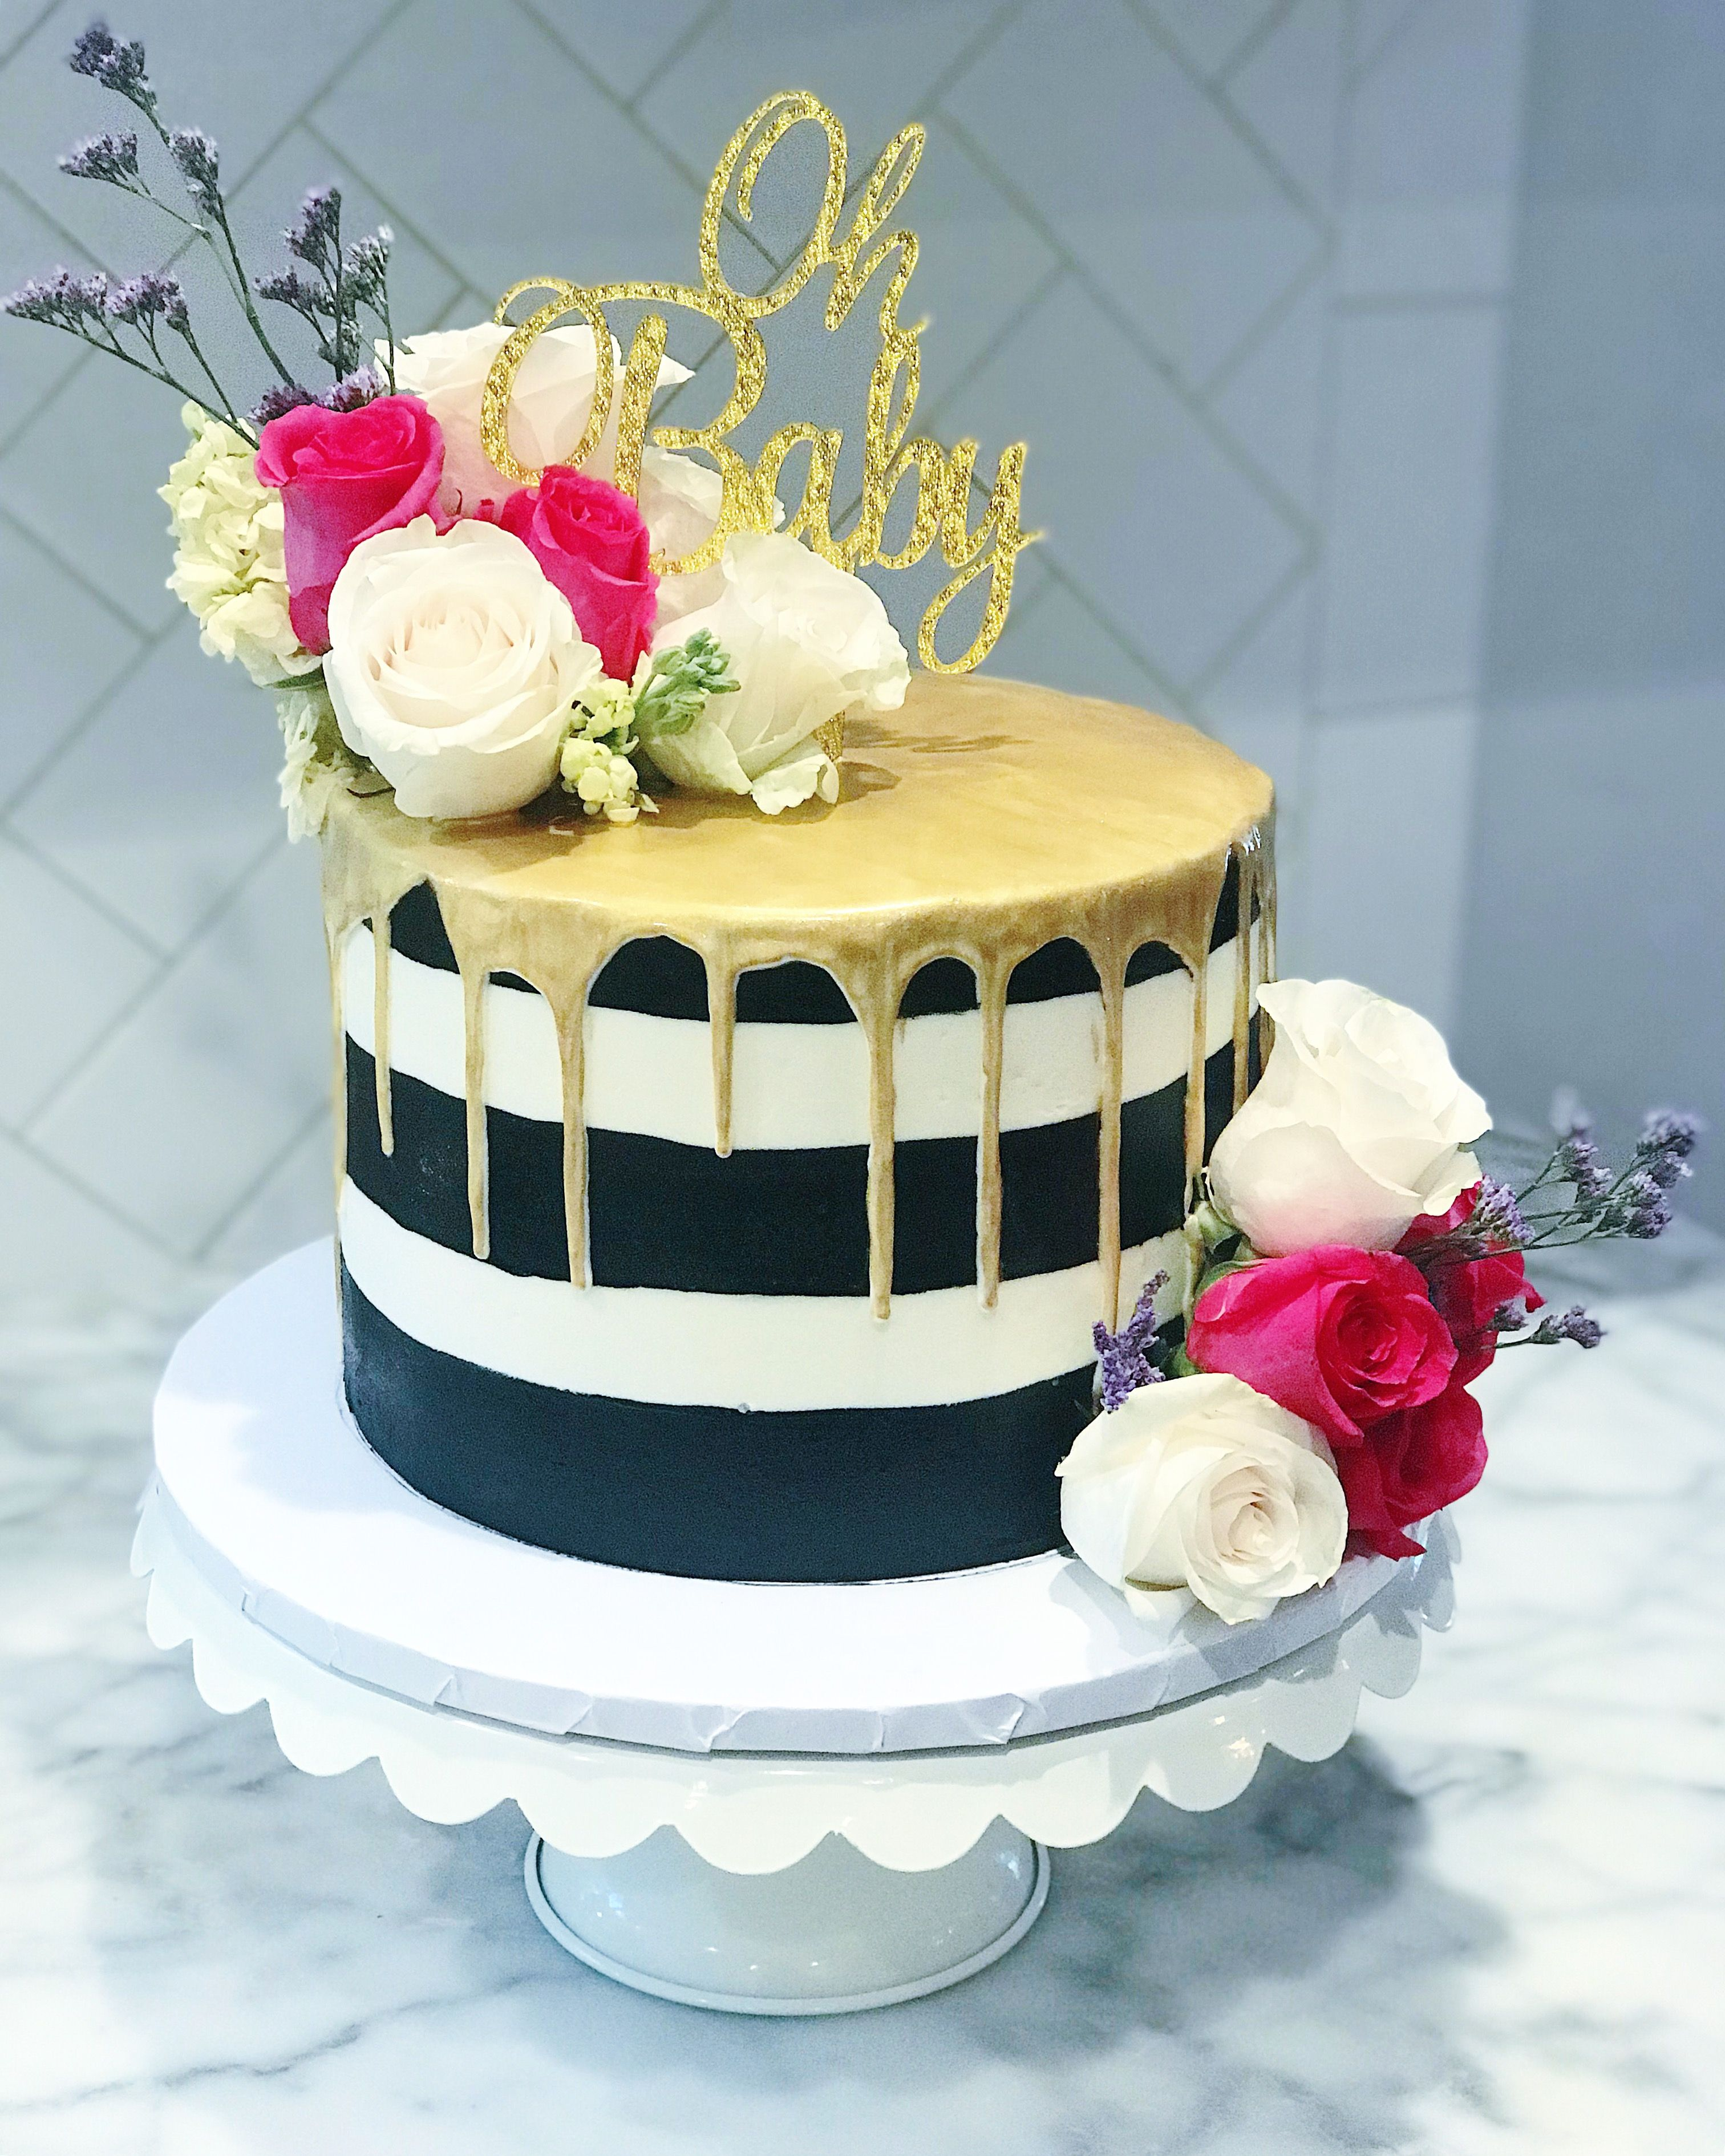 Kate Spade Inspired Baby Shower Cake Gold Drip, Black And